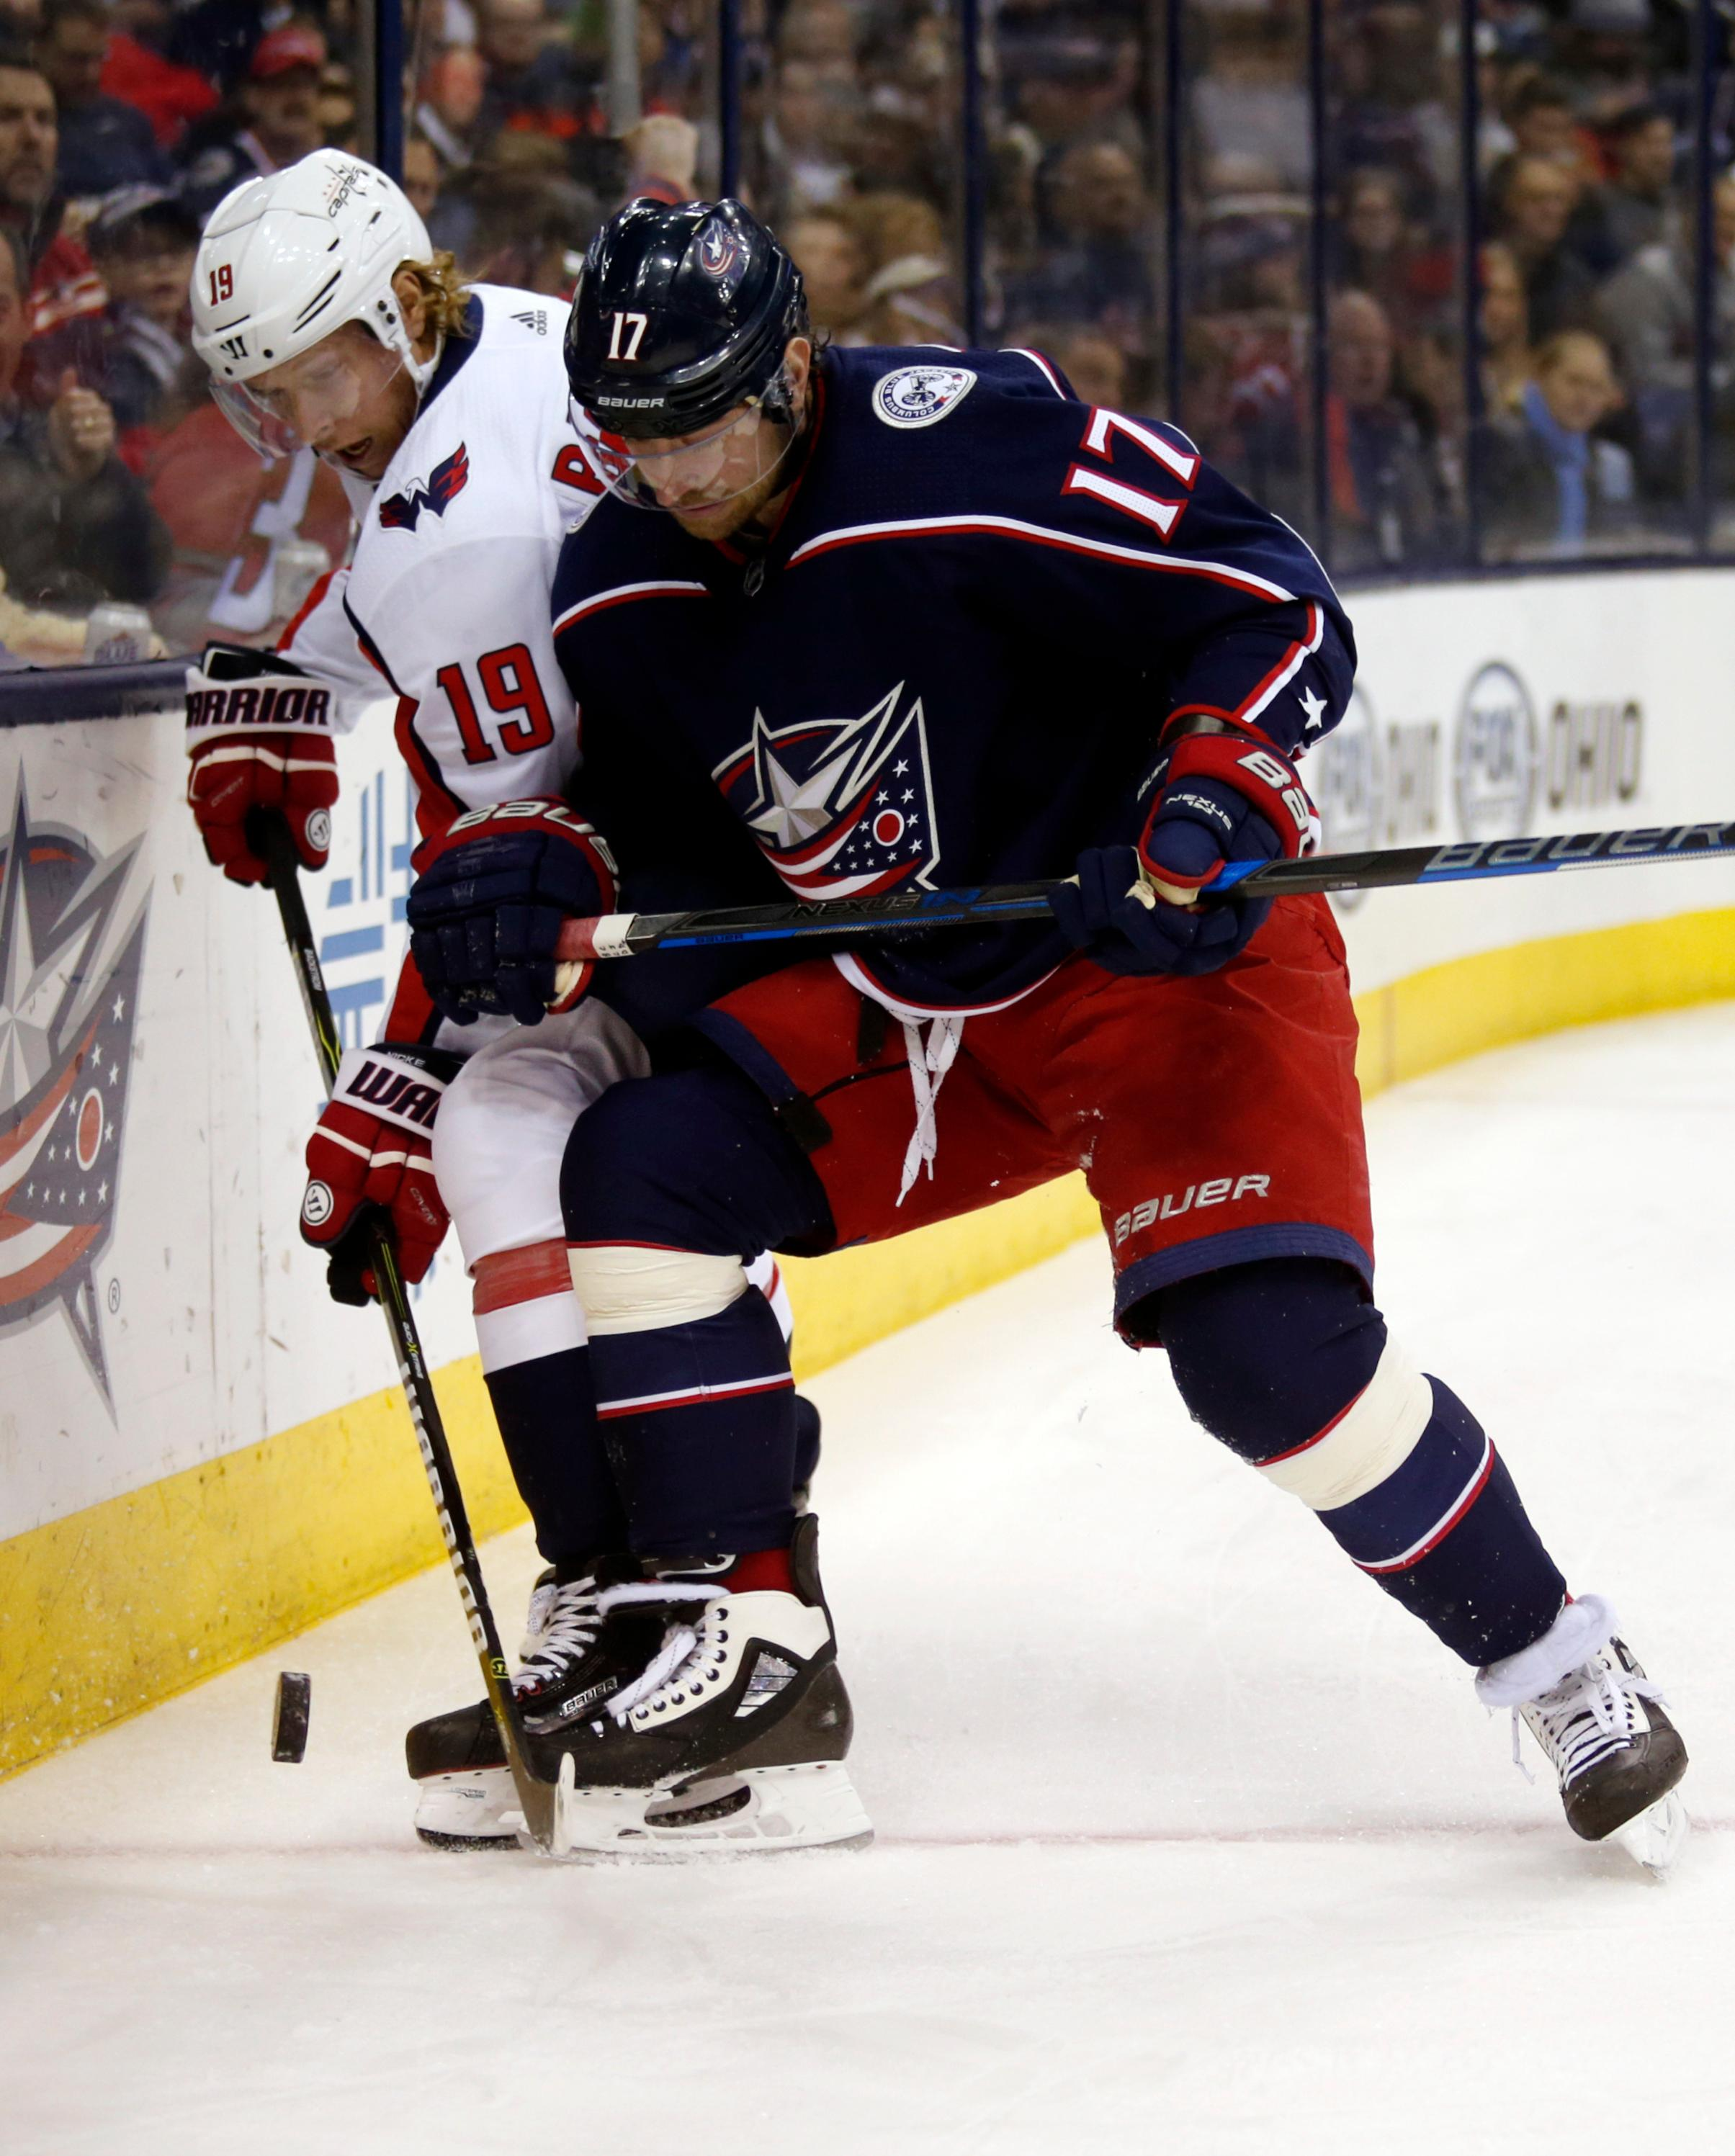 Columbus Blue Jackets forward Brandon Dubinsky, right, checks Washington Capitals forward Nicklas Backstrom, of Sweden, during the first period of an NHL hockey game in Columbus, Ohio, Monday, Feb. 26, 2018. (AP Photo/Paul Vernon)